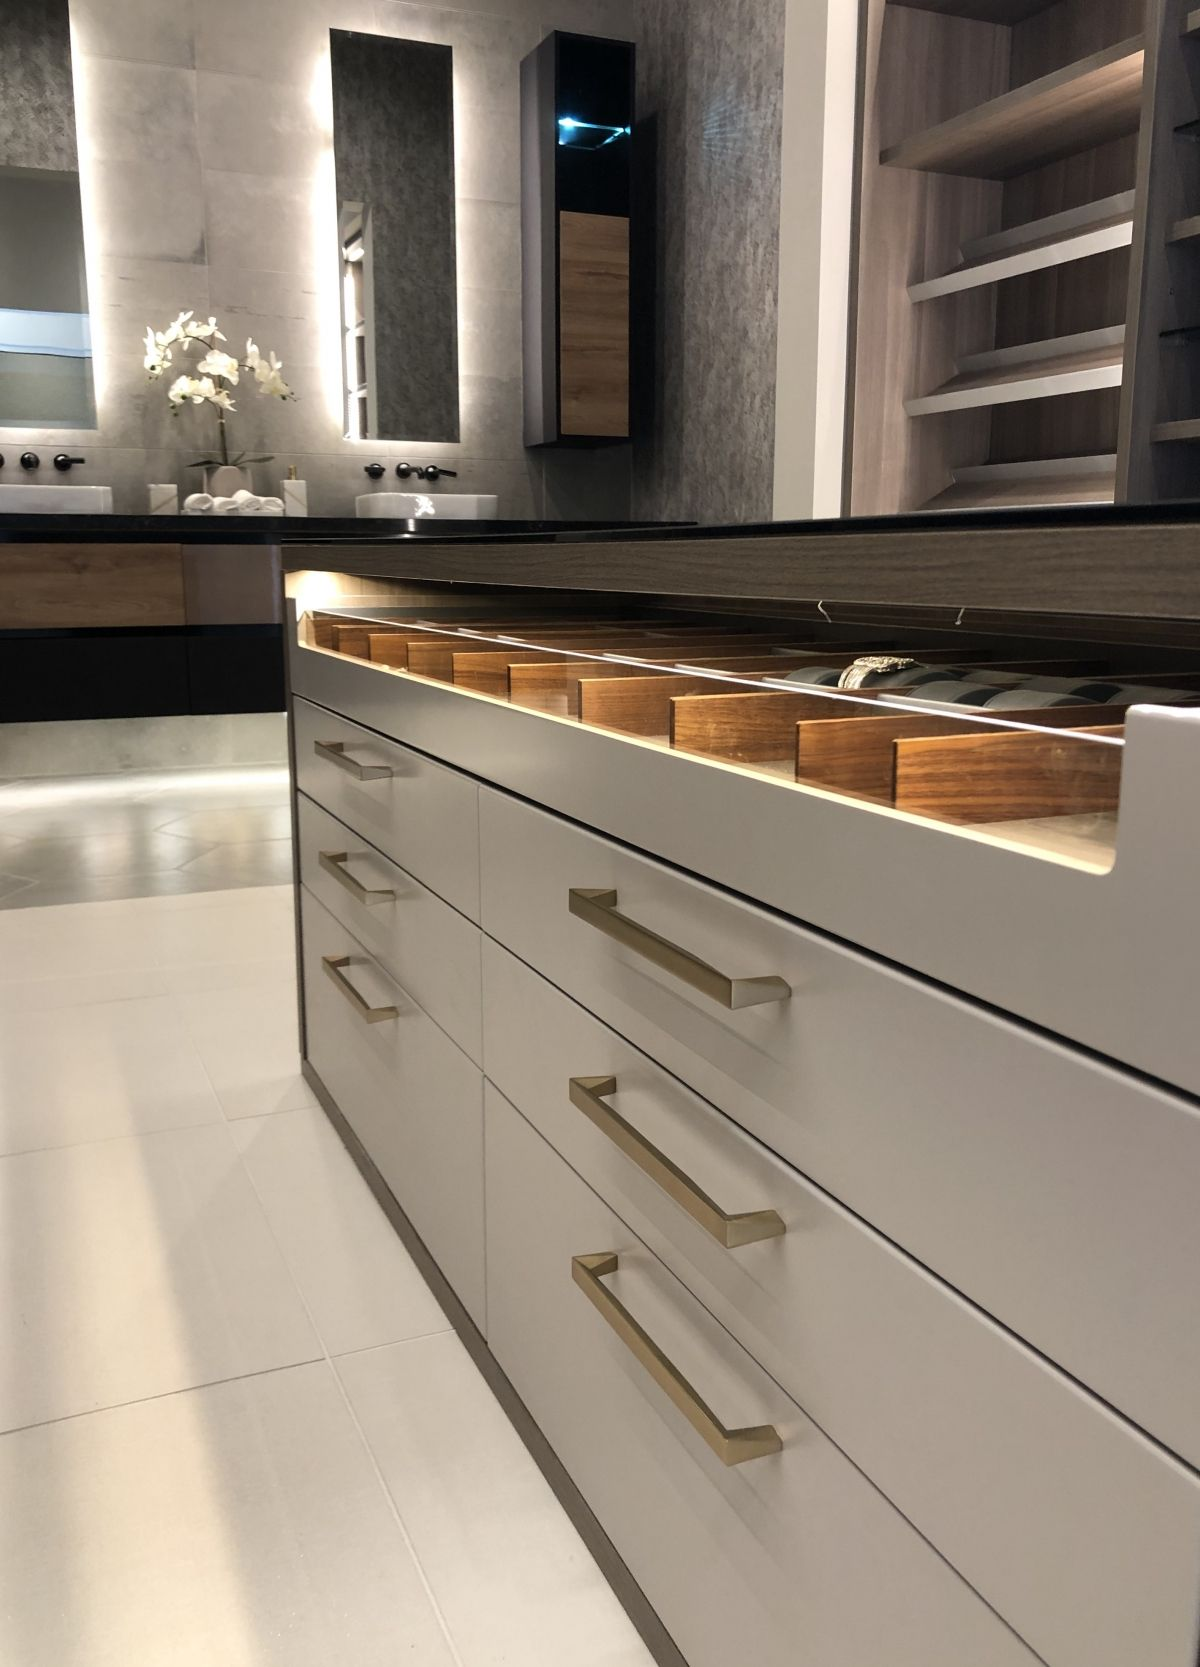 What Is The Right Cabinet For My Kitchen Terravista Interior Design Group Kitchen Cabinets Kitchen Cabinet Design Kitchen Design